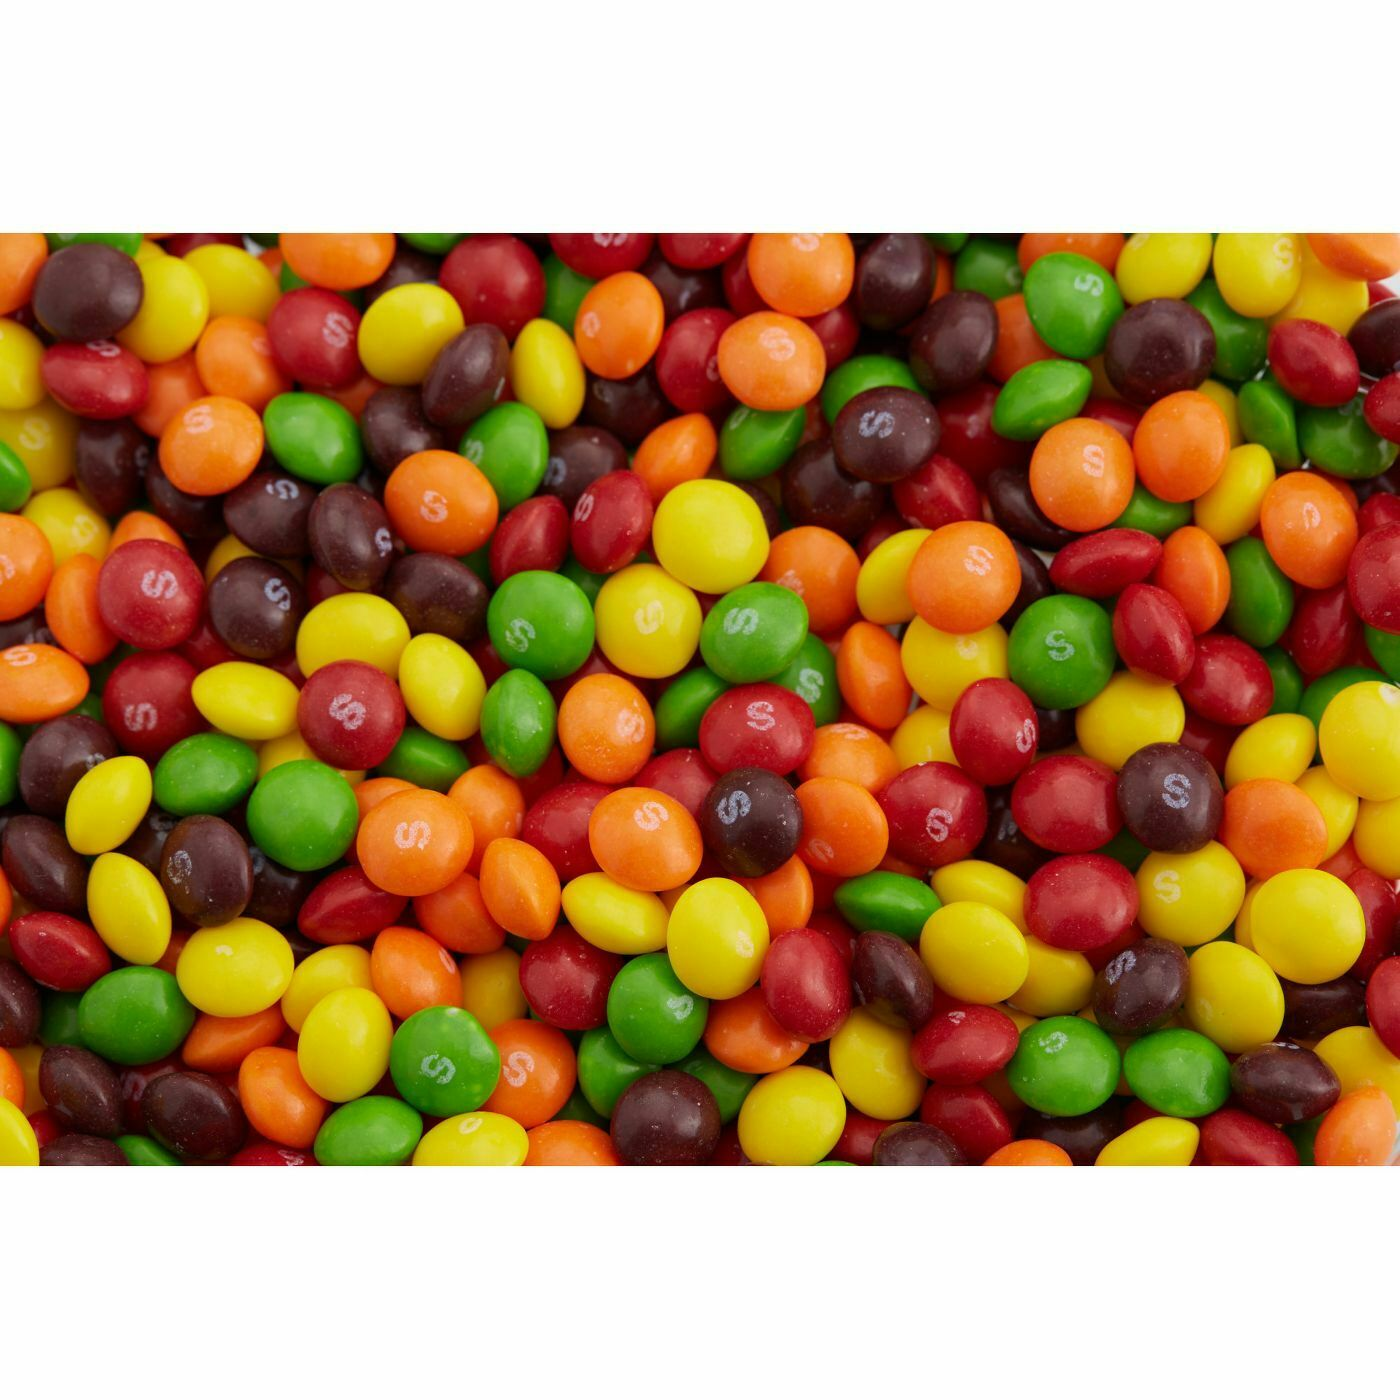 Skittles Original Bite Size Candies, 9oz